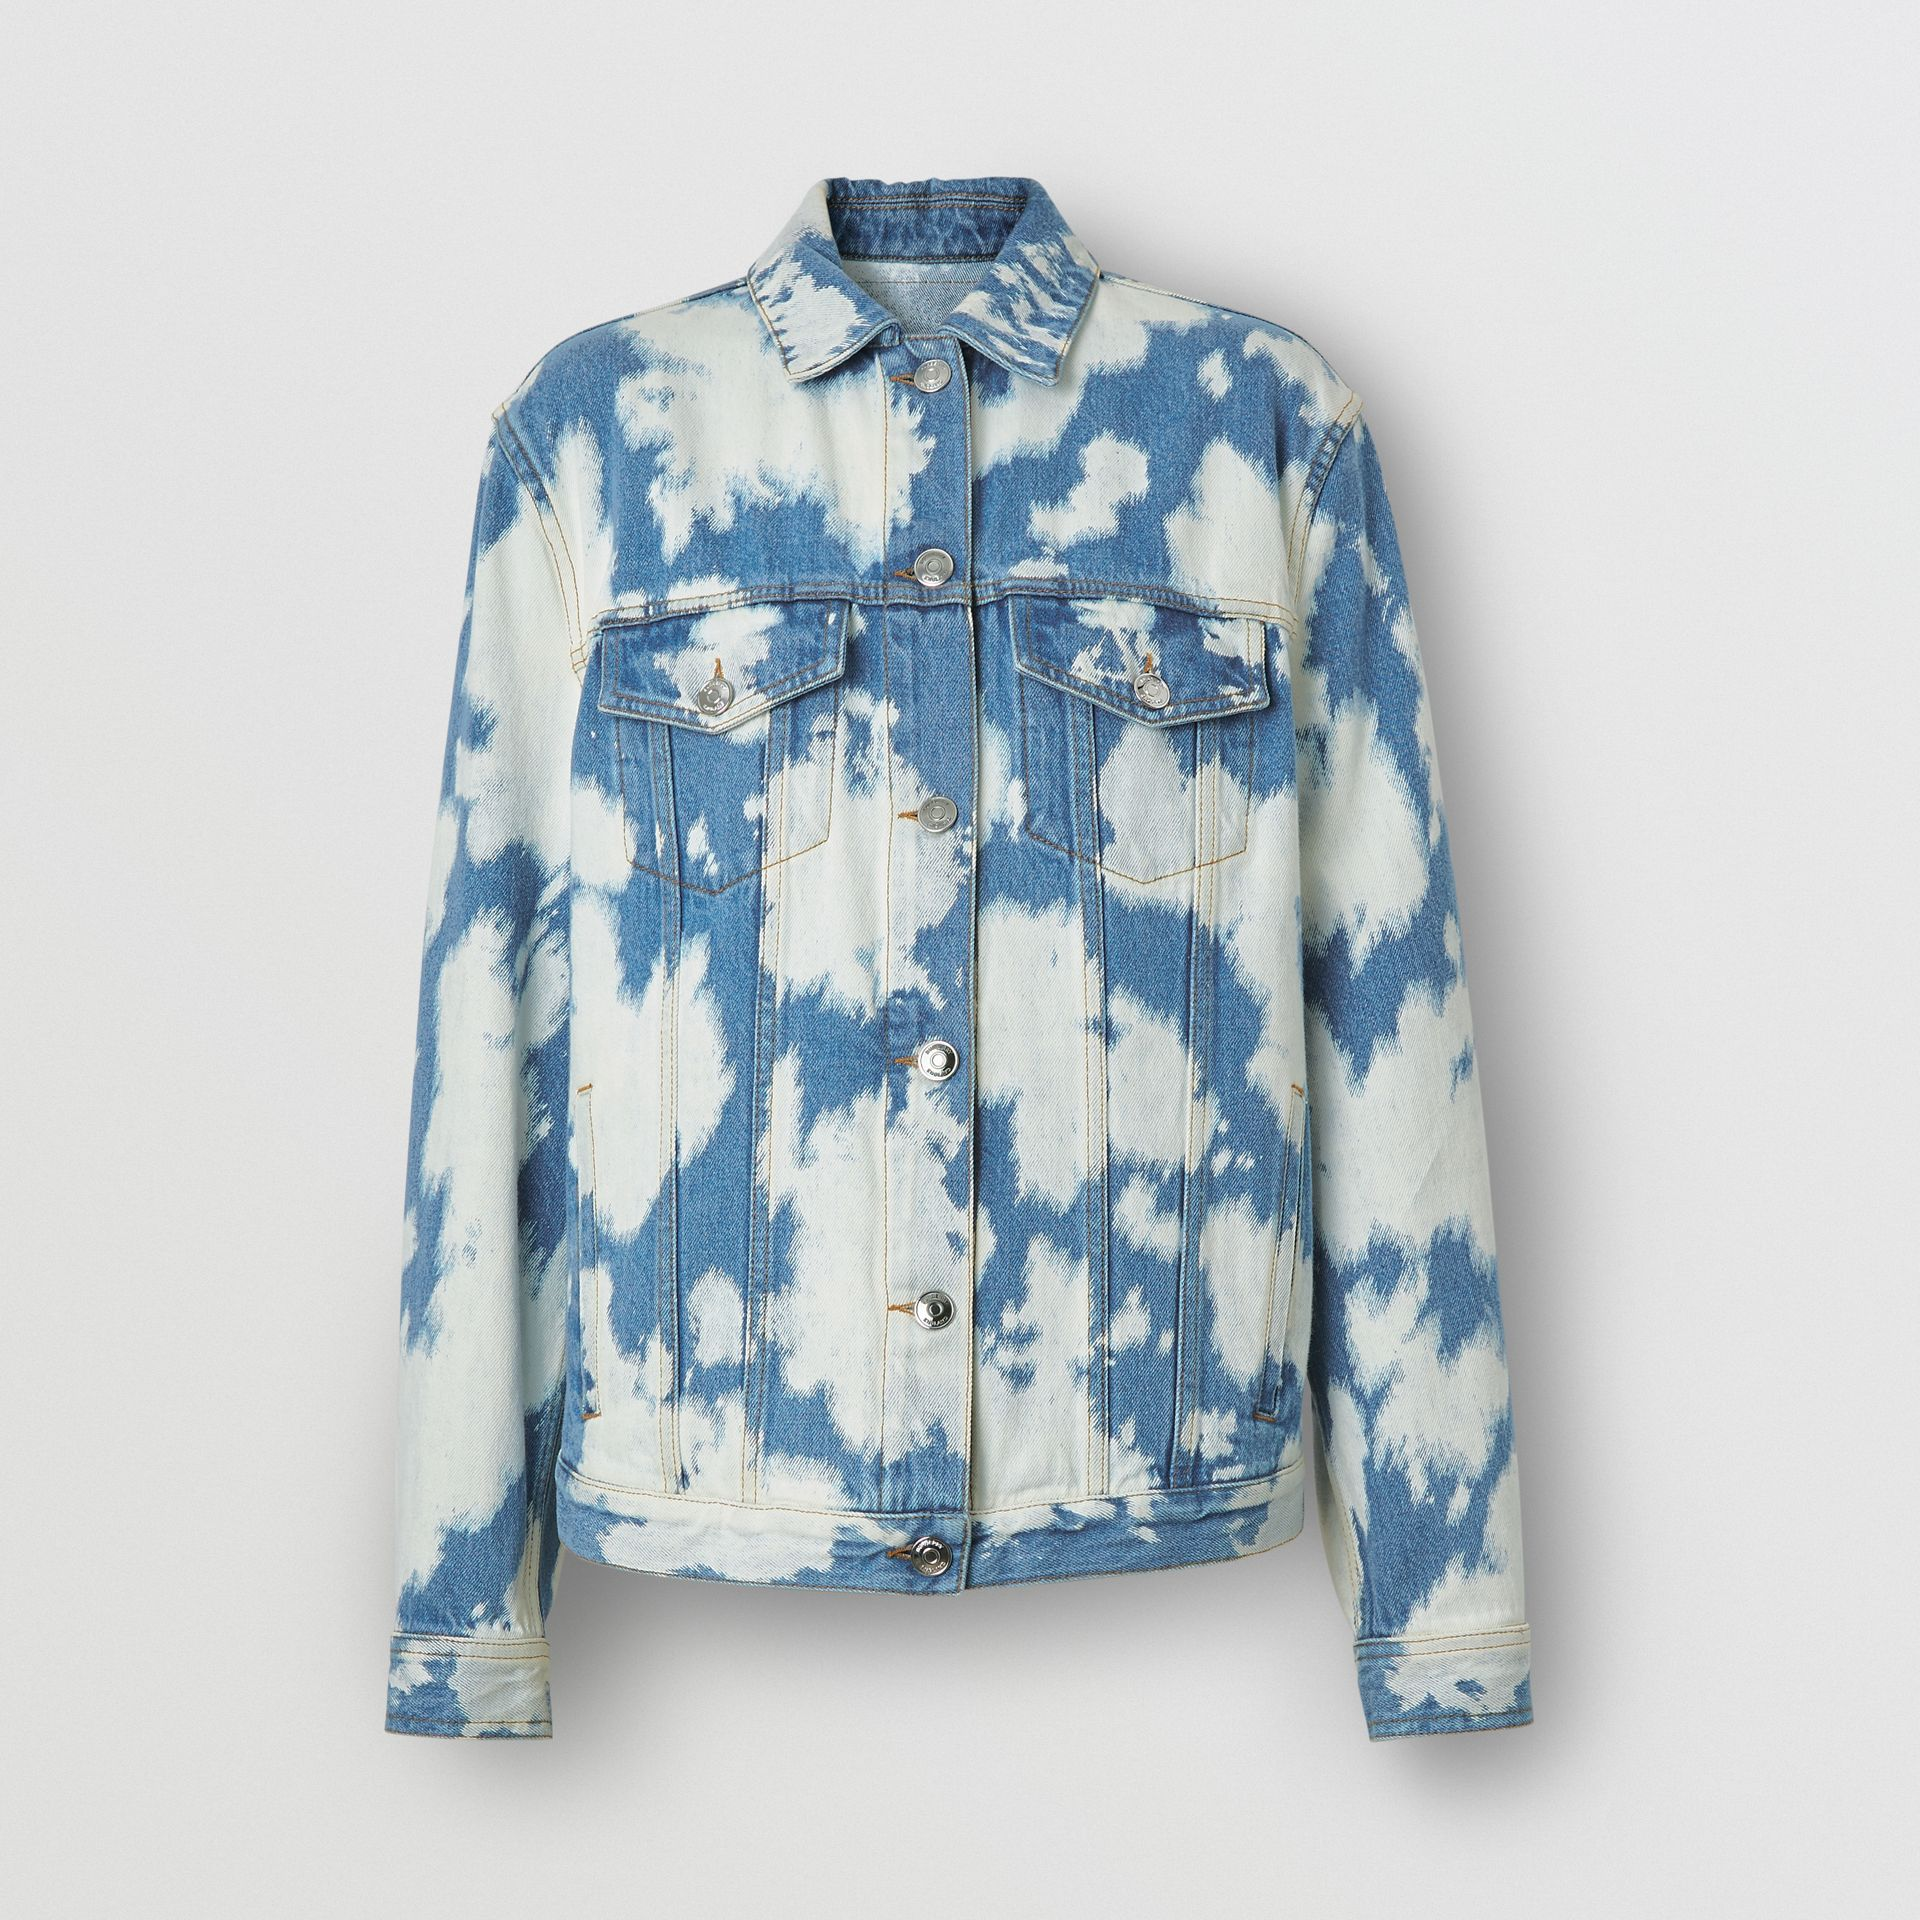 Monogram Motif Bleached Denim Jacket in Blue - Women | Burberry - gallery image 3